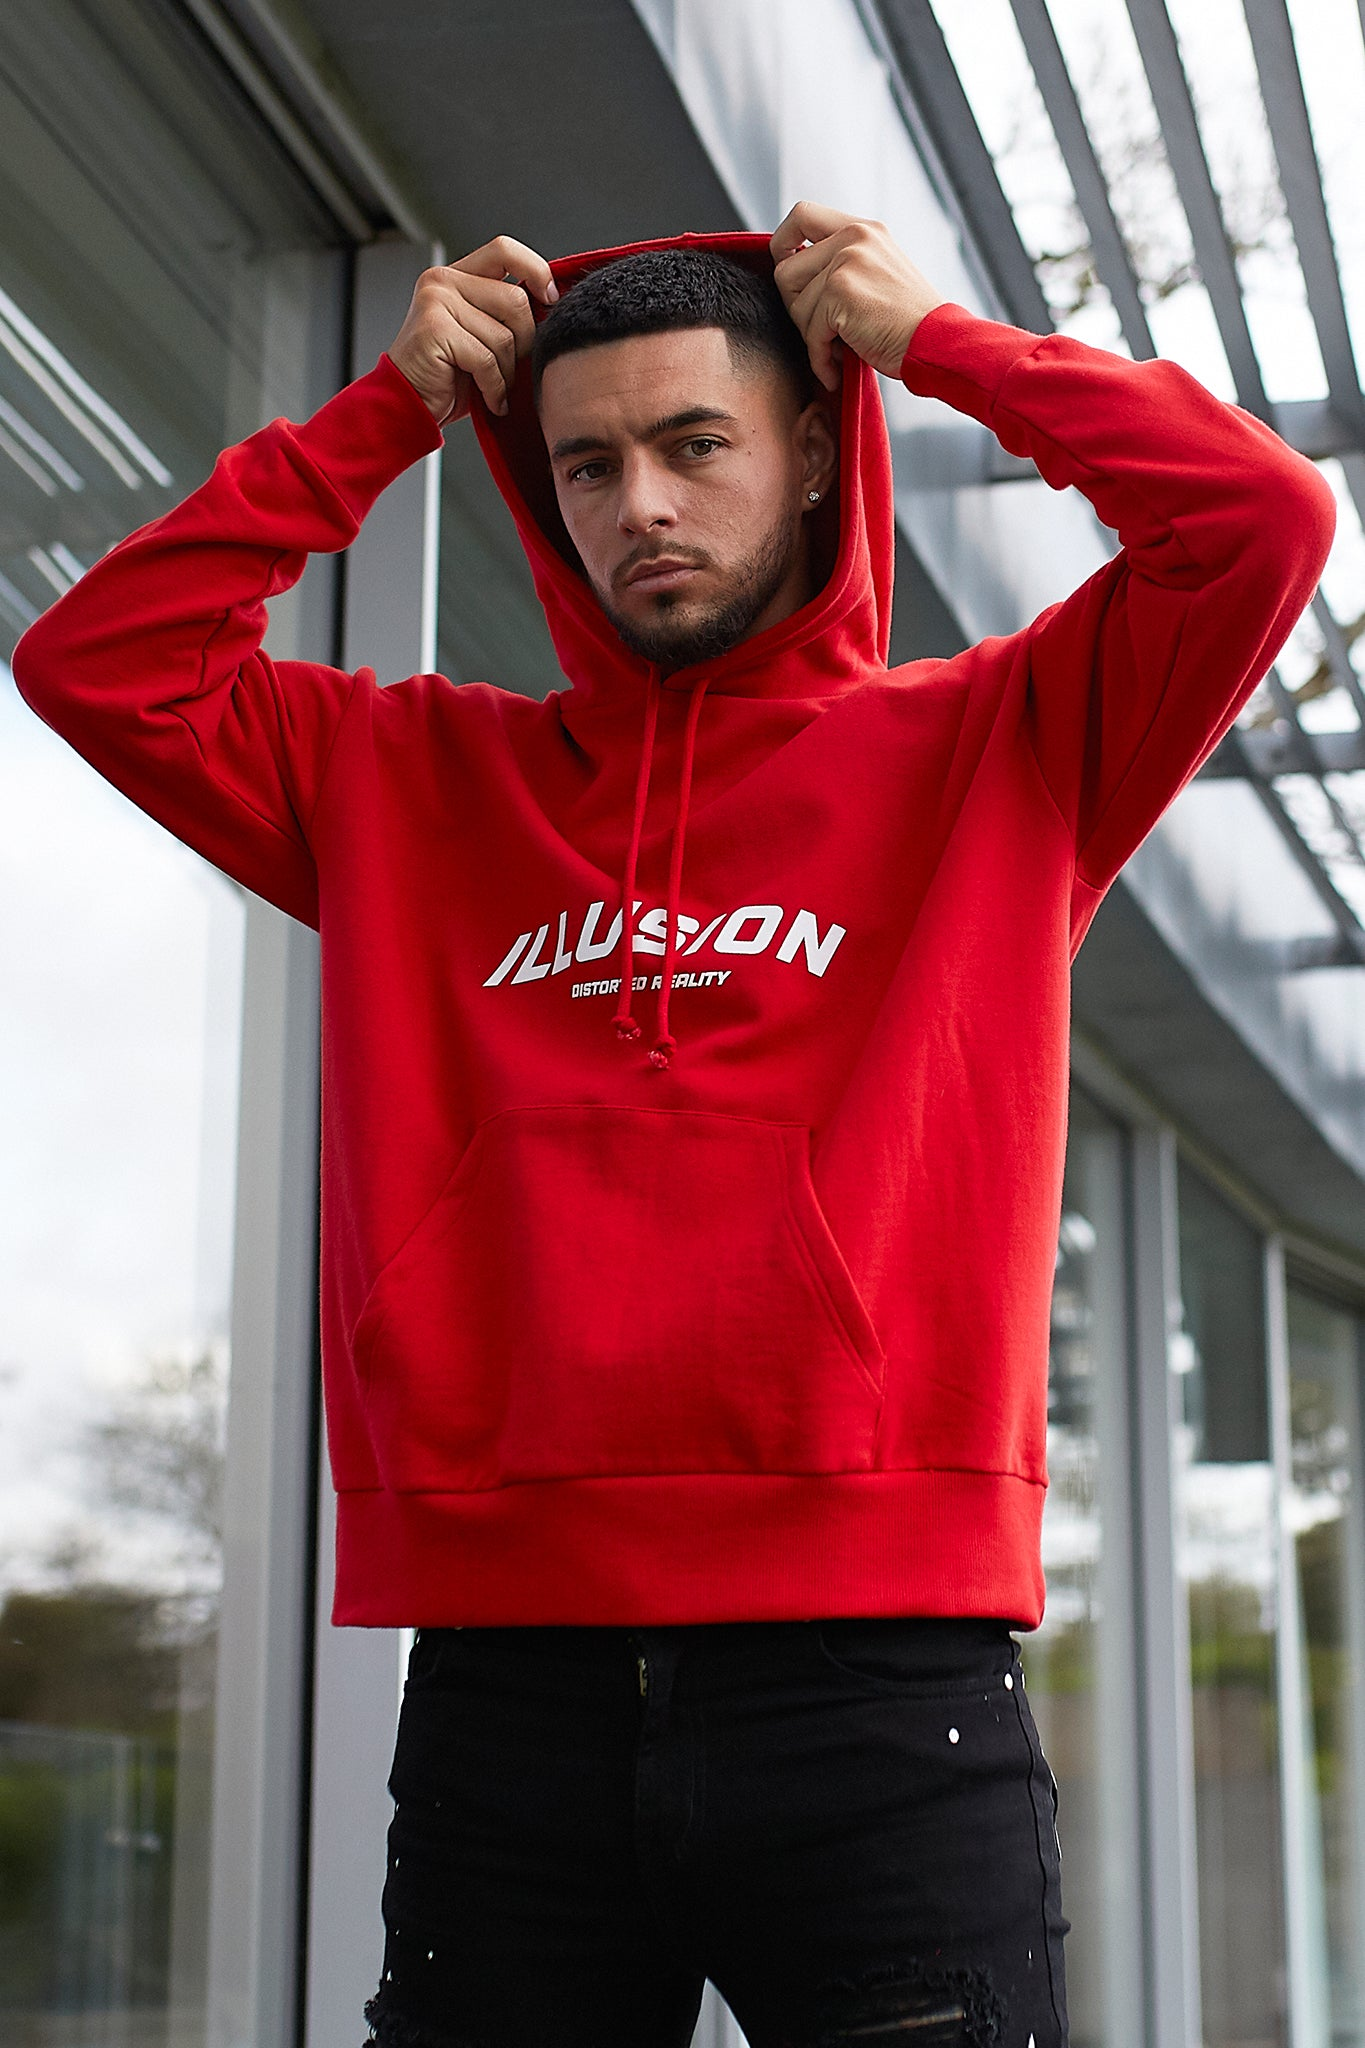 RED OVERSIZED DISTORTED REALITY HOODIE - Illusion Attire